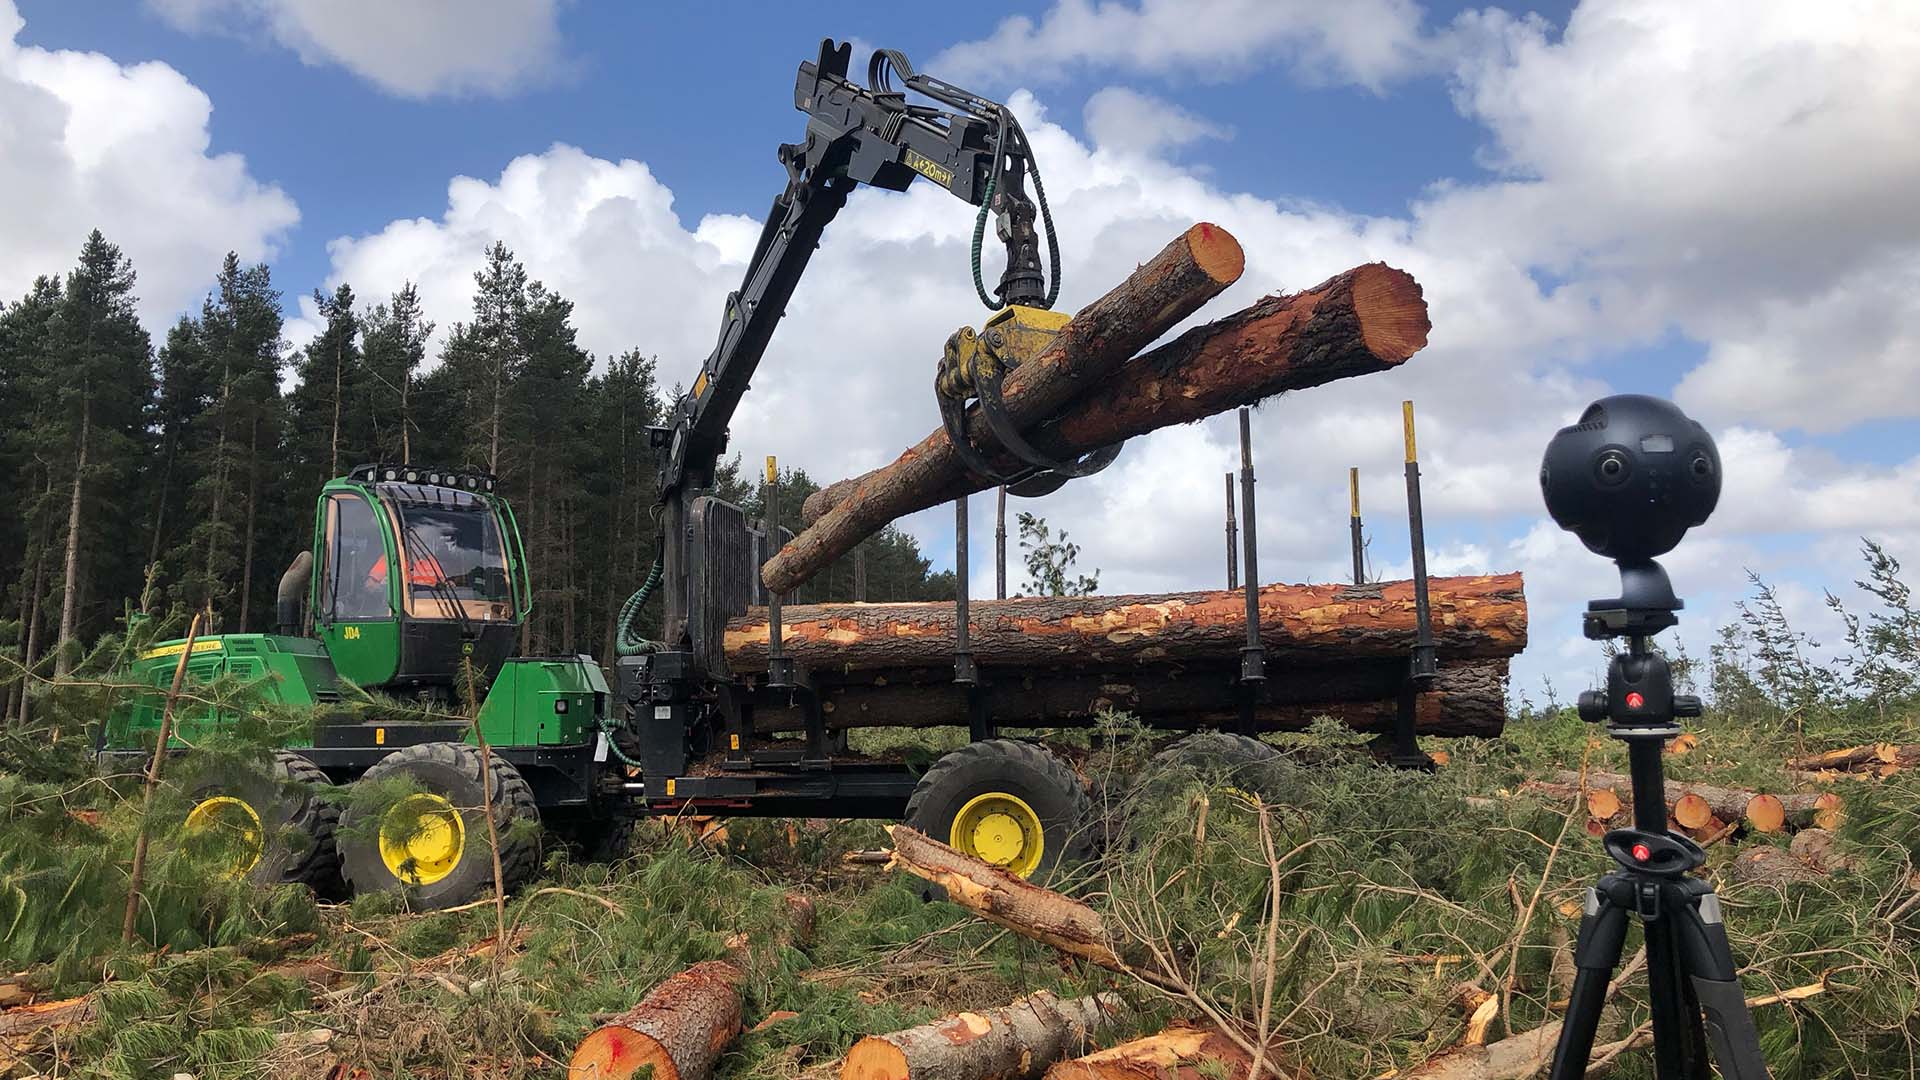 Logs being lifted next to Insta360 Pro camera filming for Forest Learning 360 video production